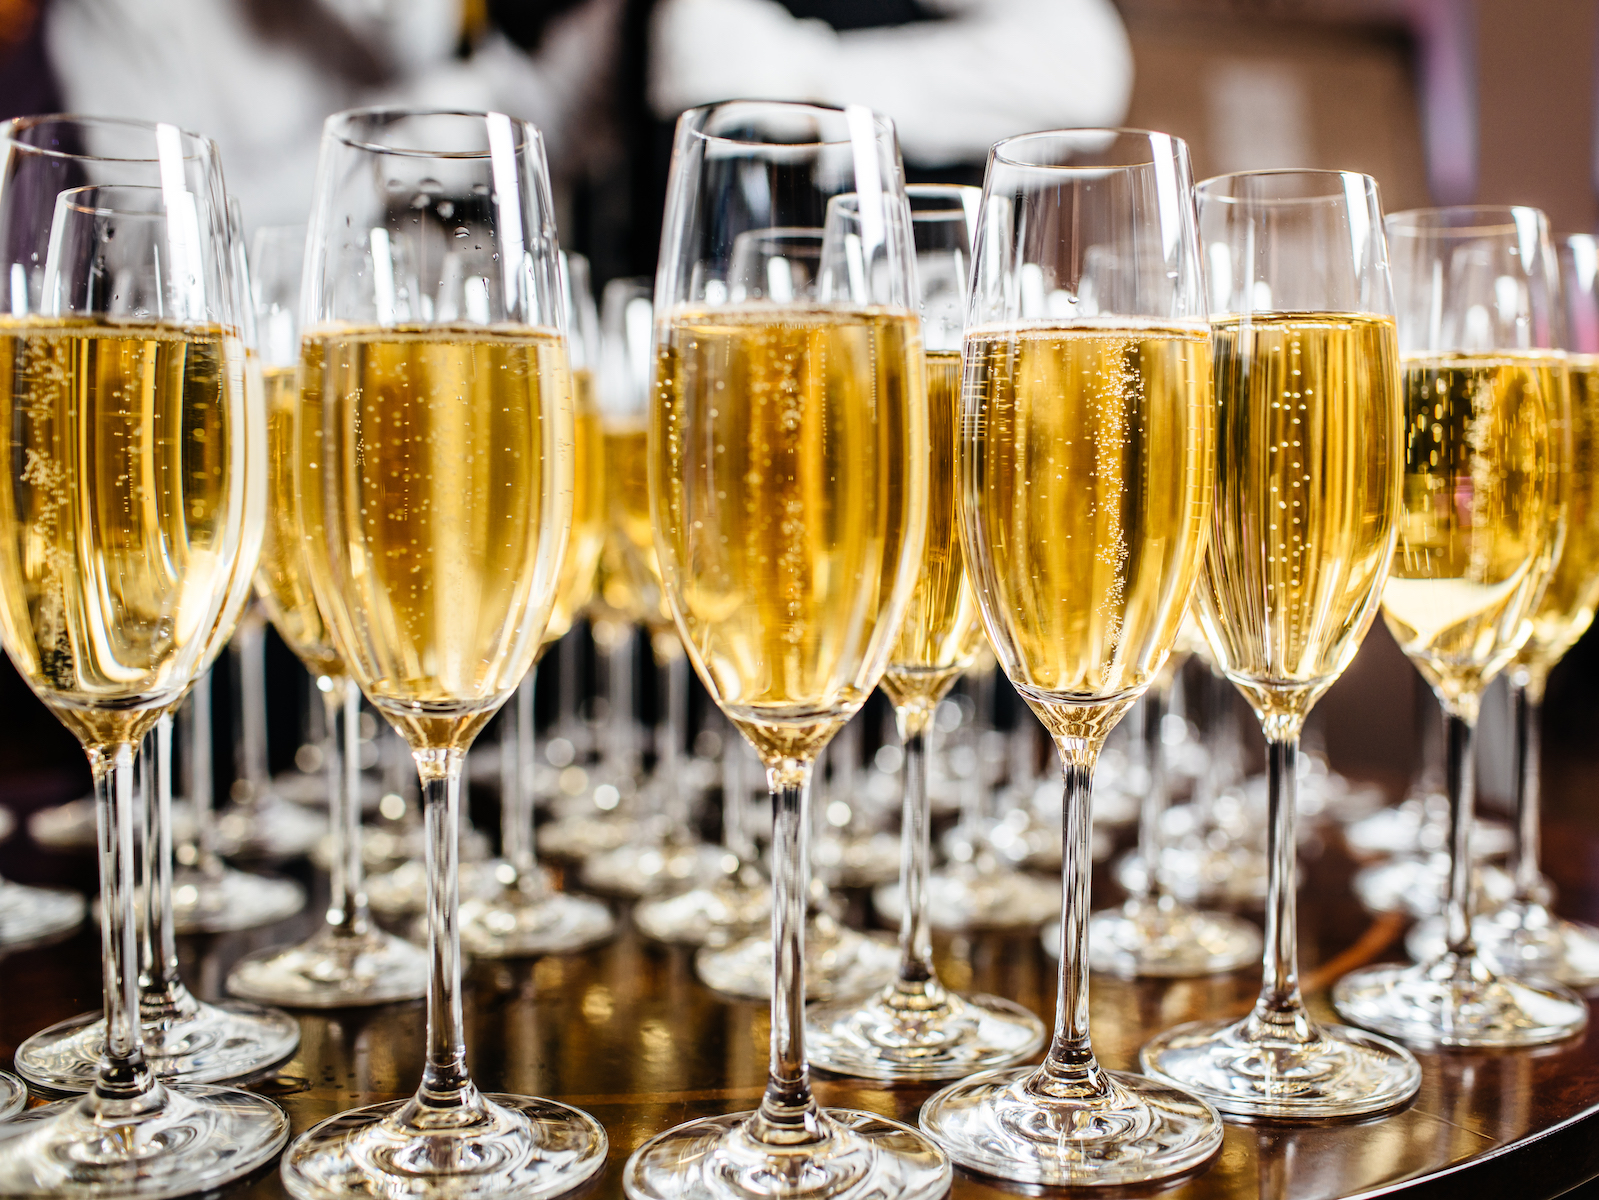 prosecco-production-FT-BLOG1018.jpg